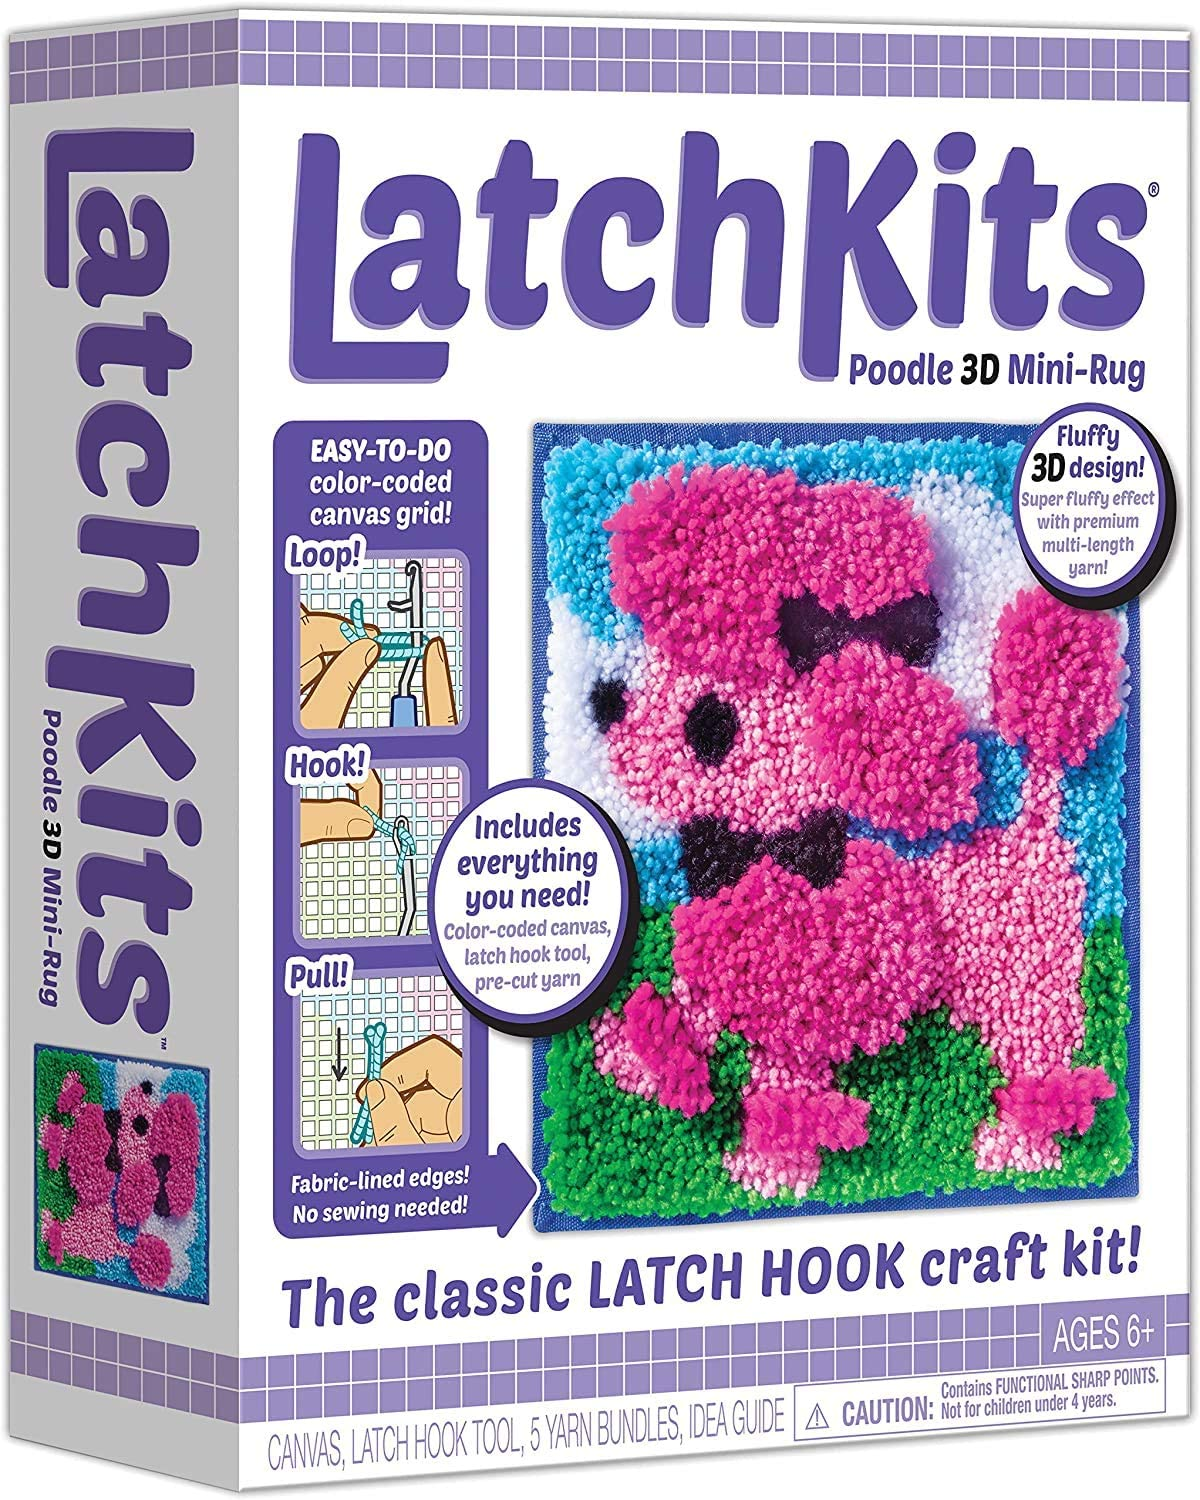 Big Size Latch Rug Kit Christmas Rug Beginner for Home Decoration Rug 43 X 37,A,43 X 37 Latch Hook Kit